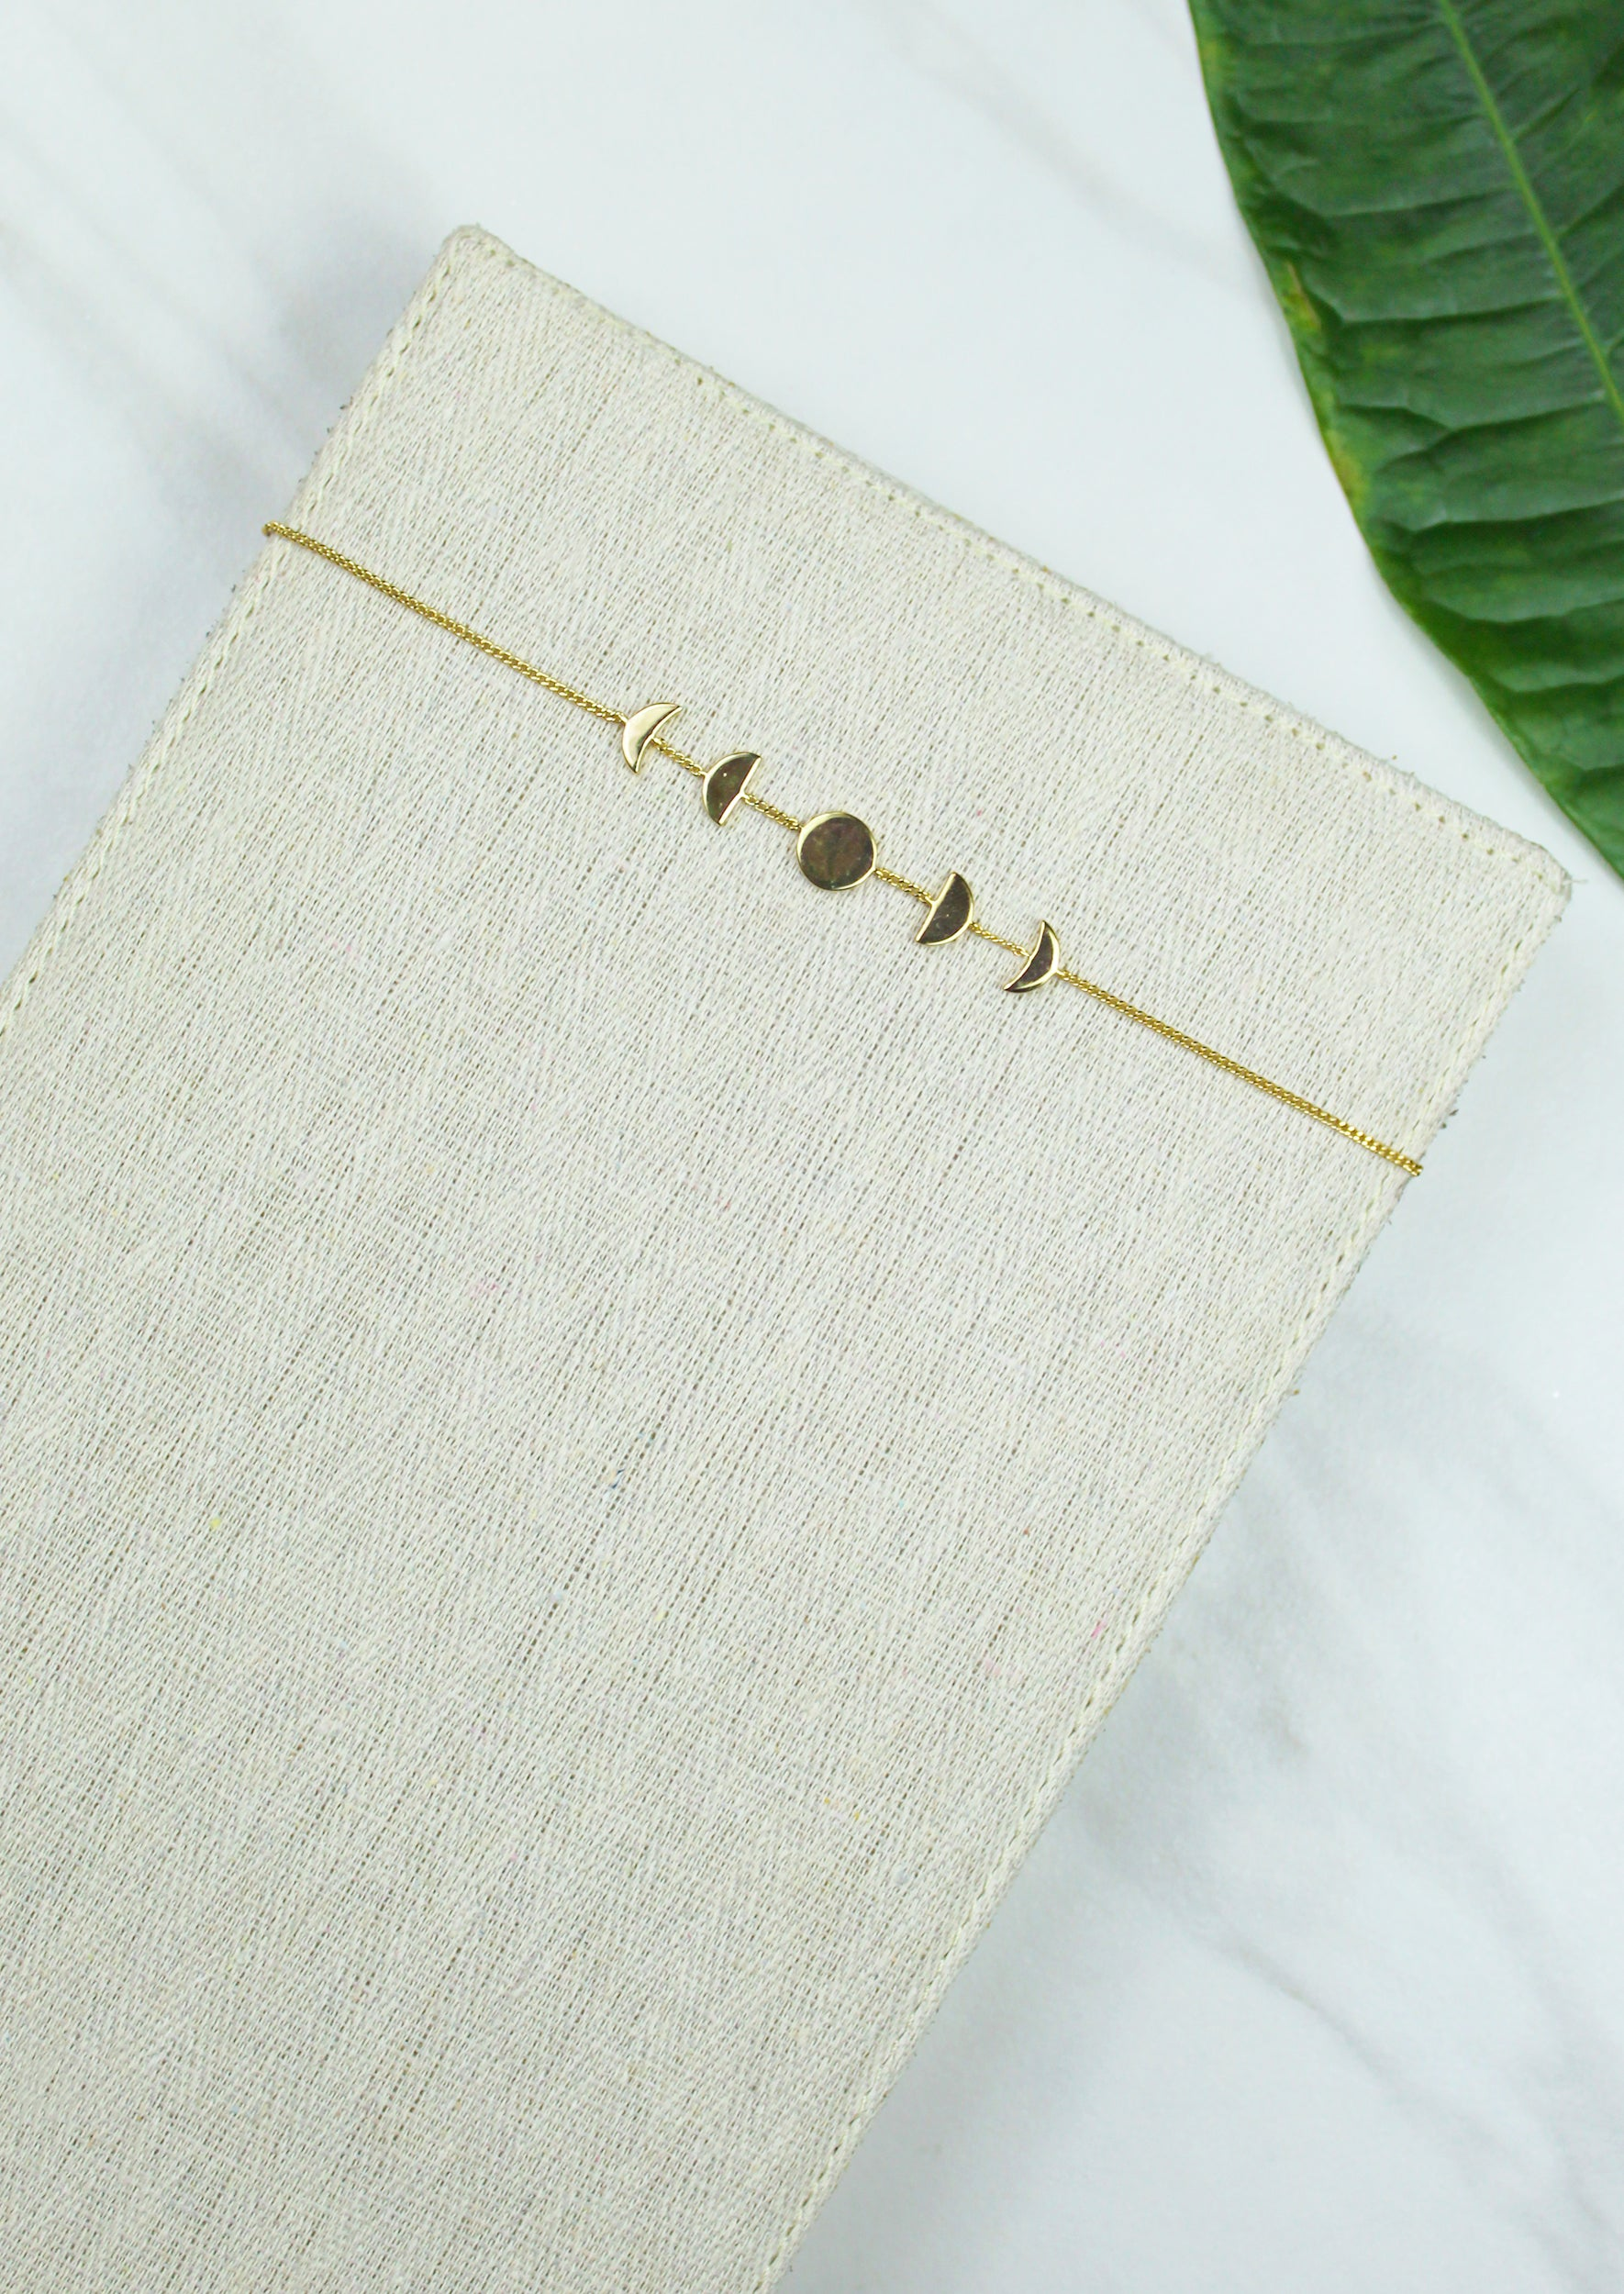 Moon Phase Choker - Jules Smith - 14K Gold Plated - Boho Jewelry